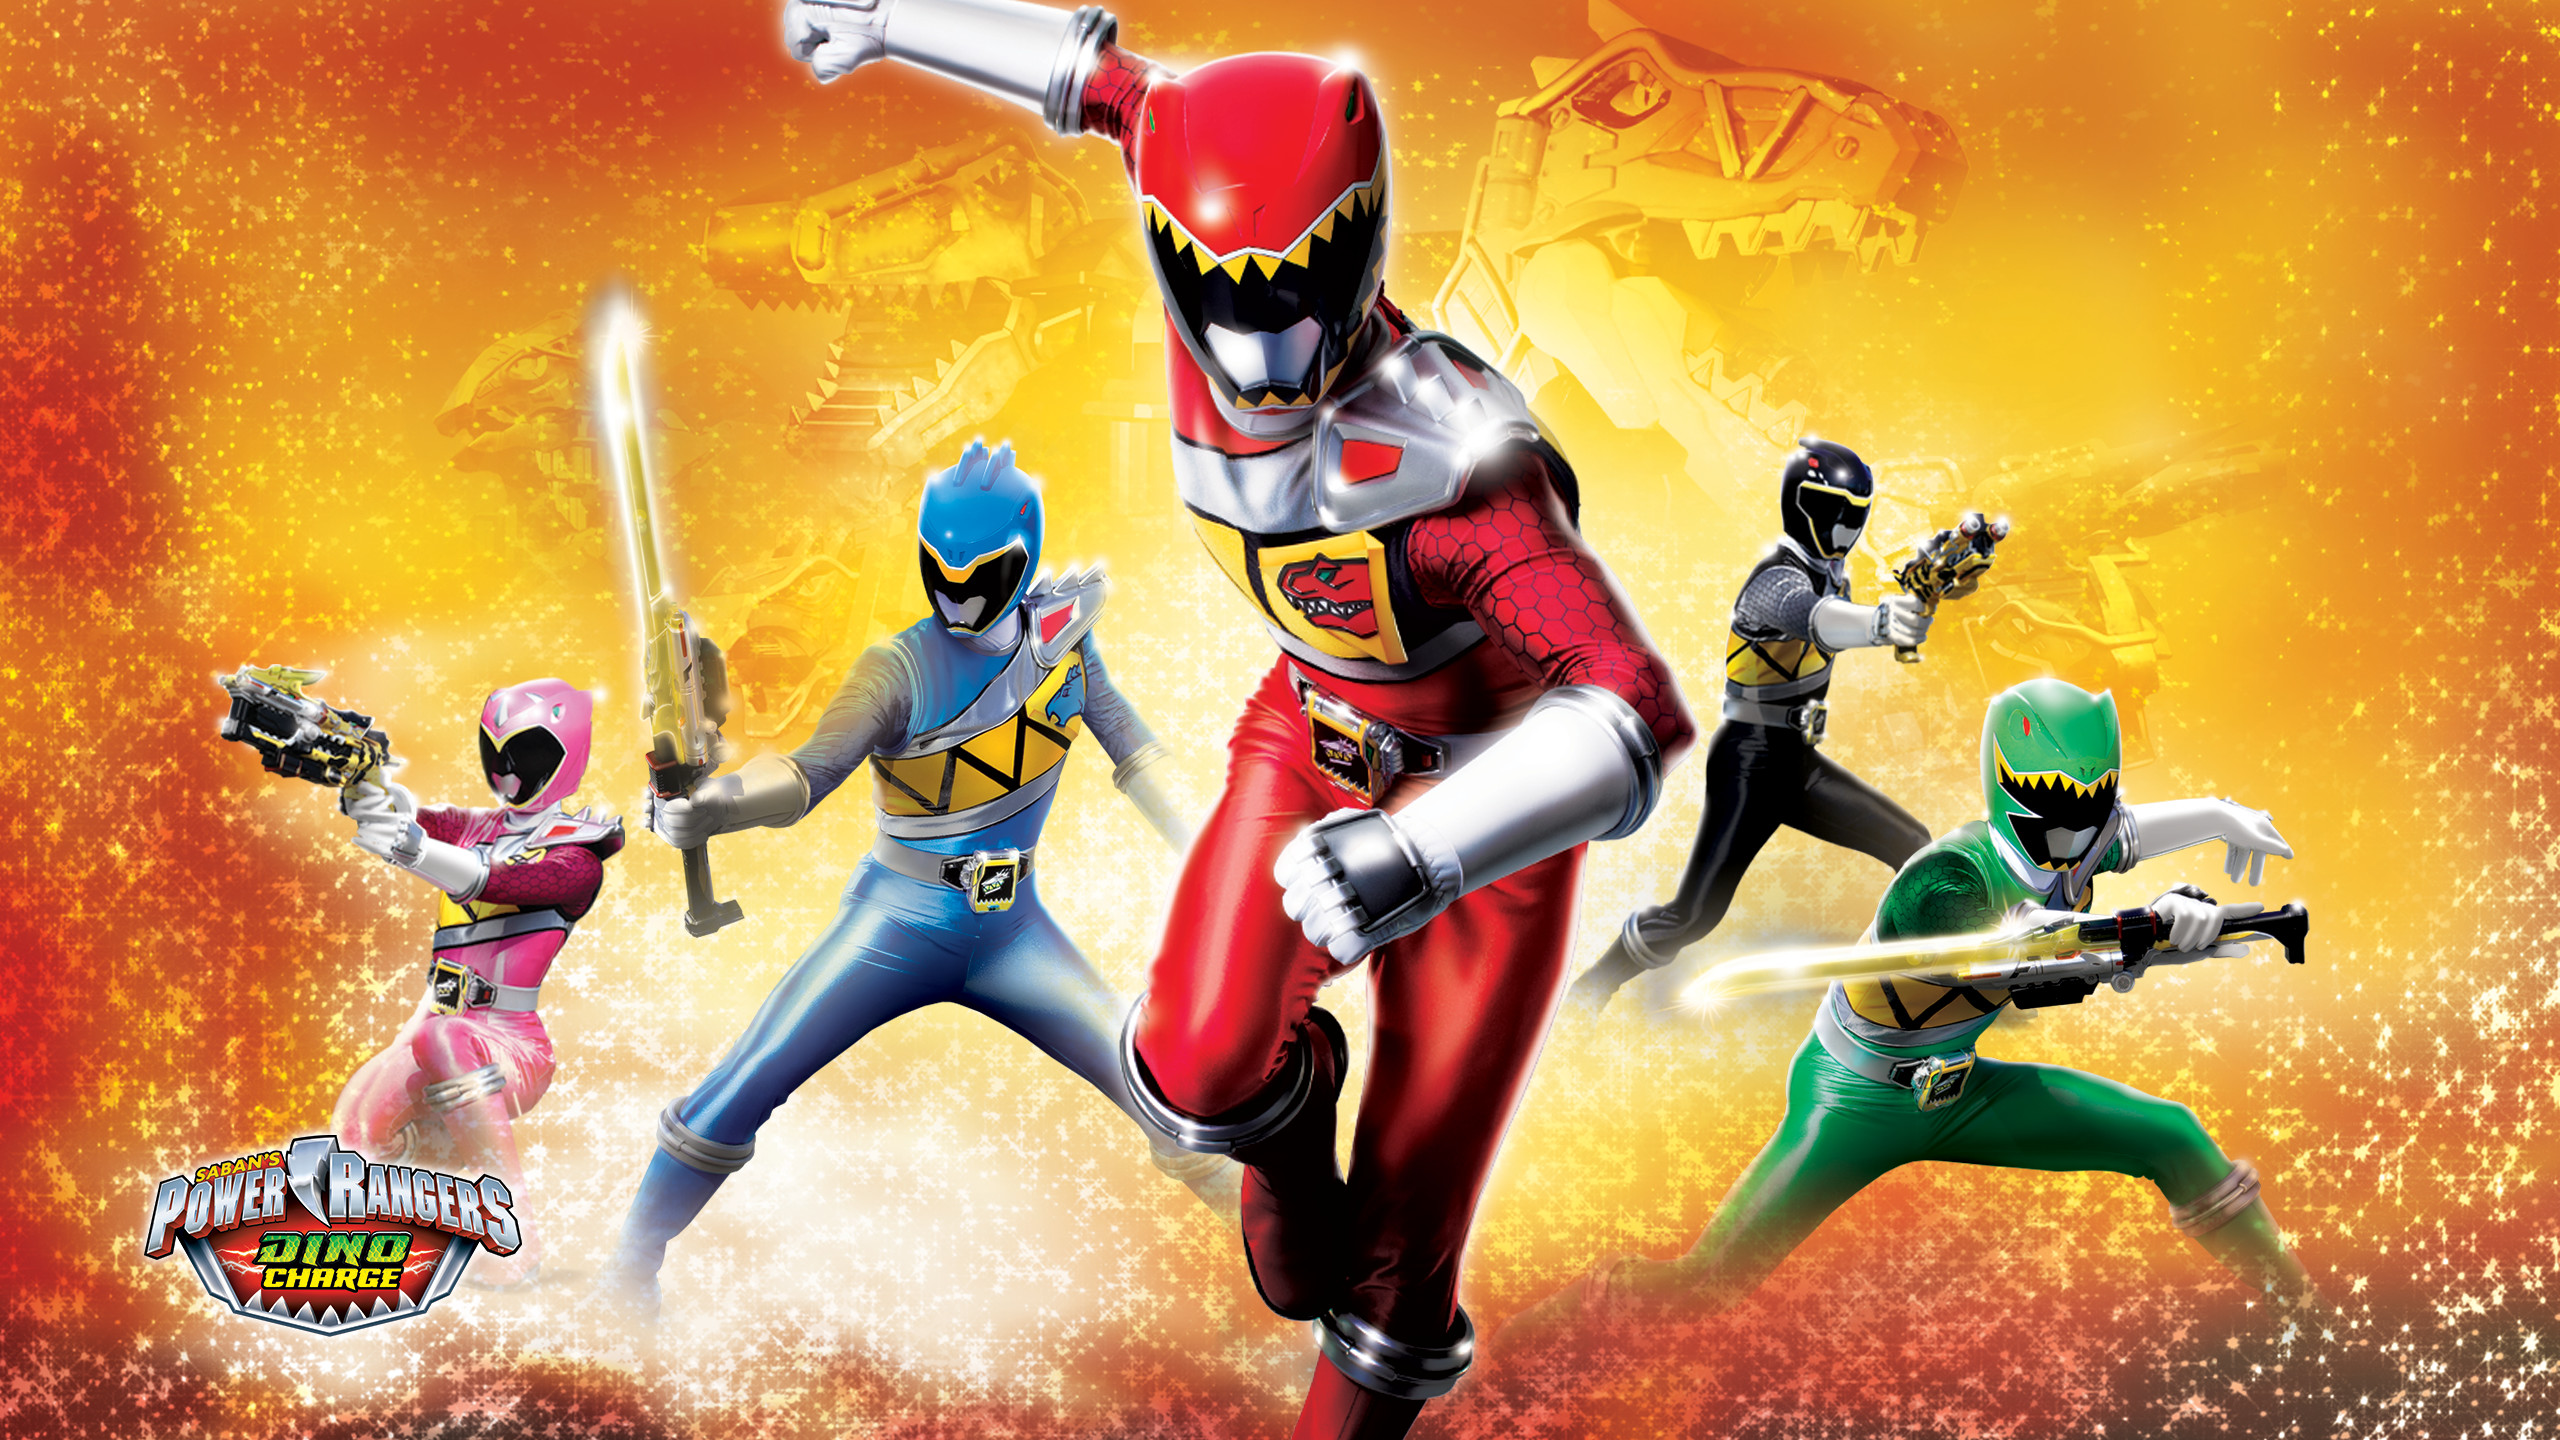 Dino Charge Wallpaper – Power Rangers – The Official Power Rangers .